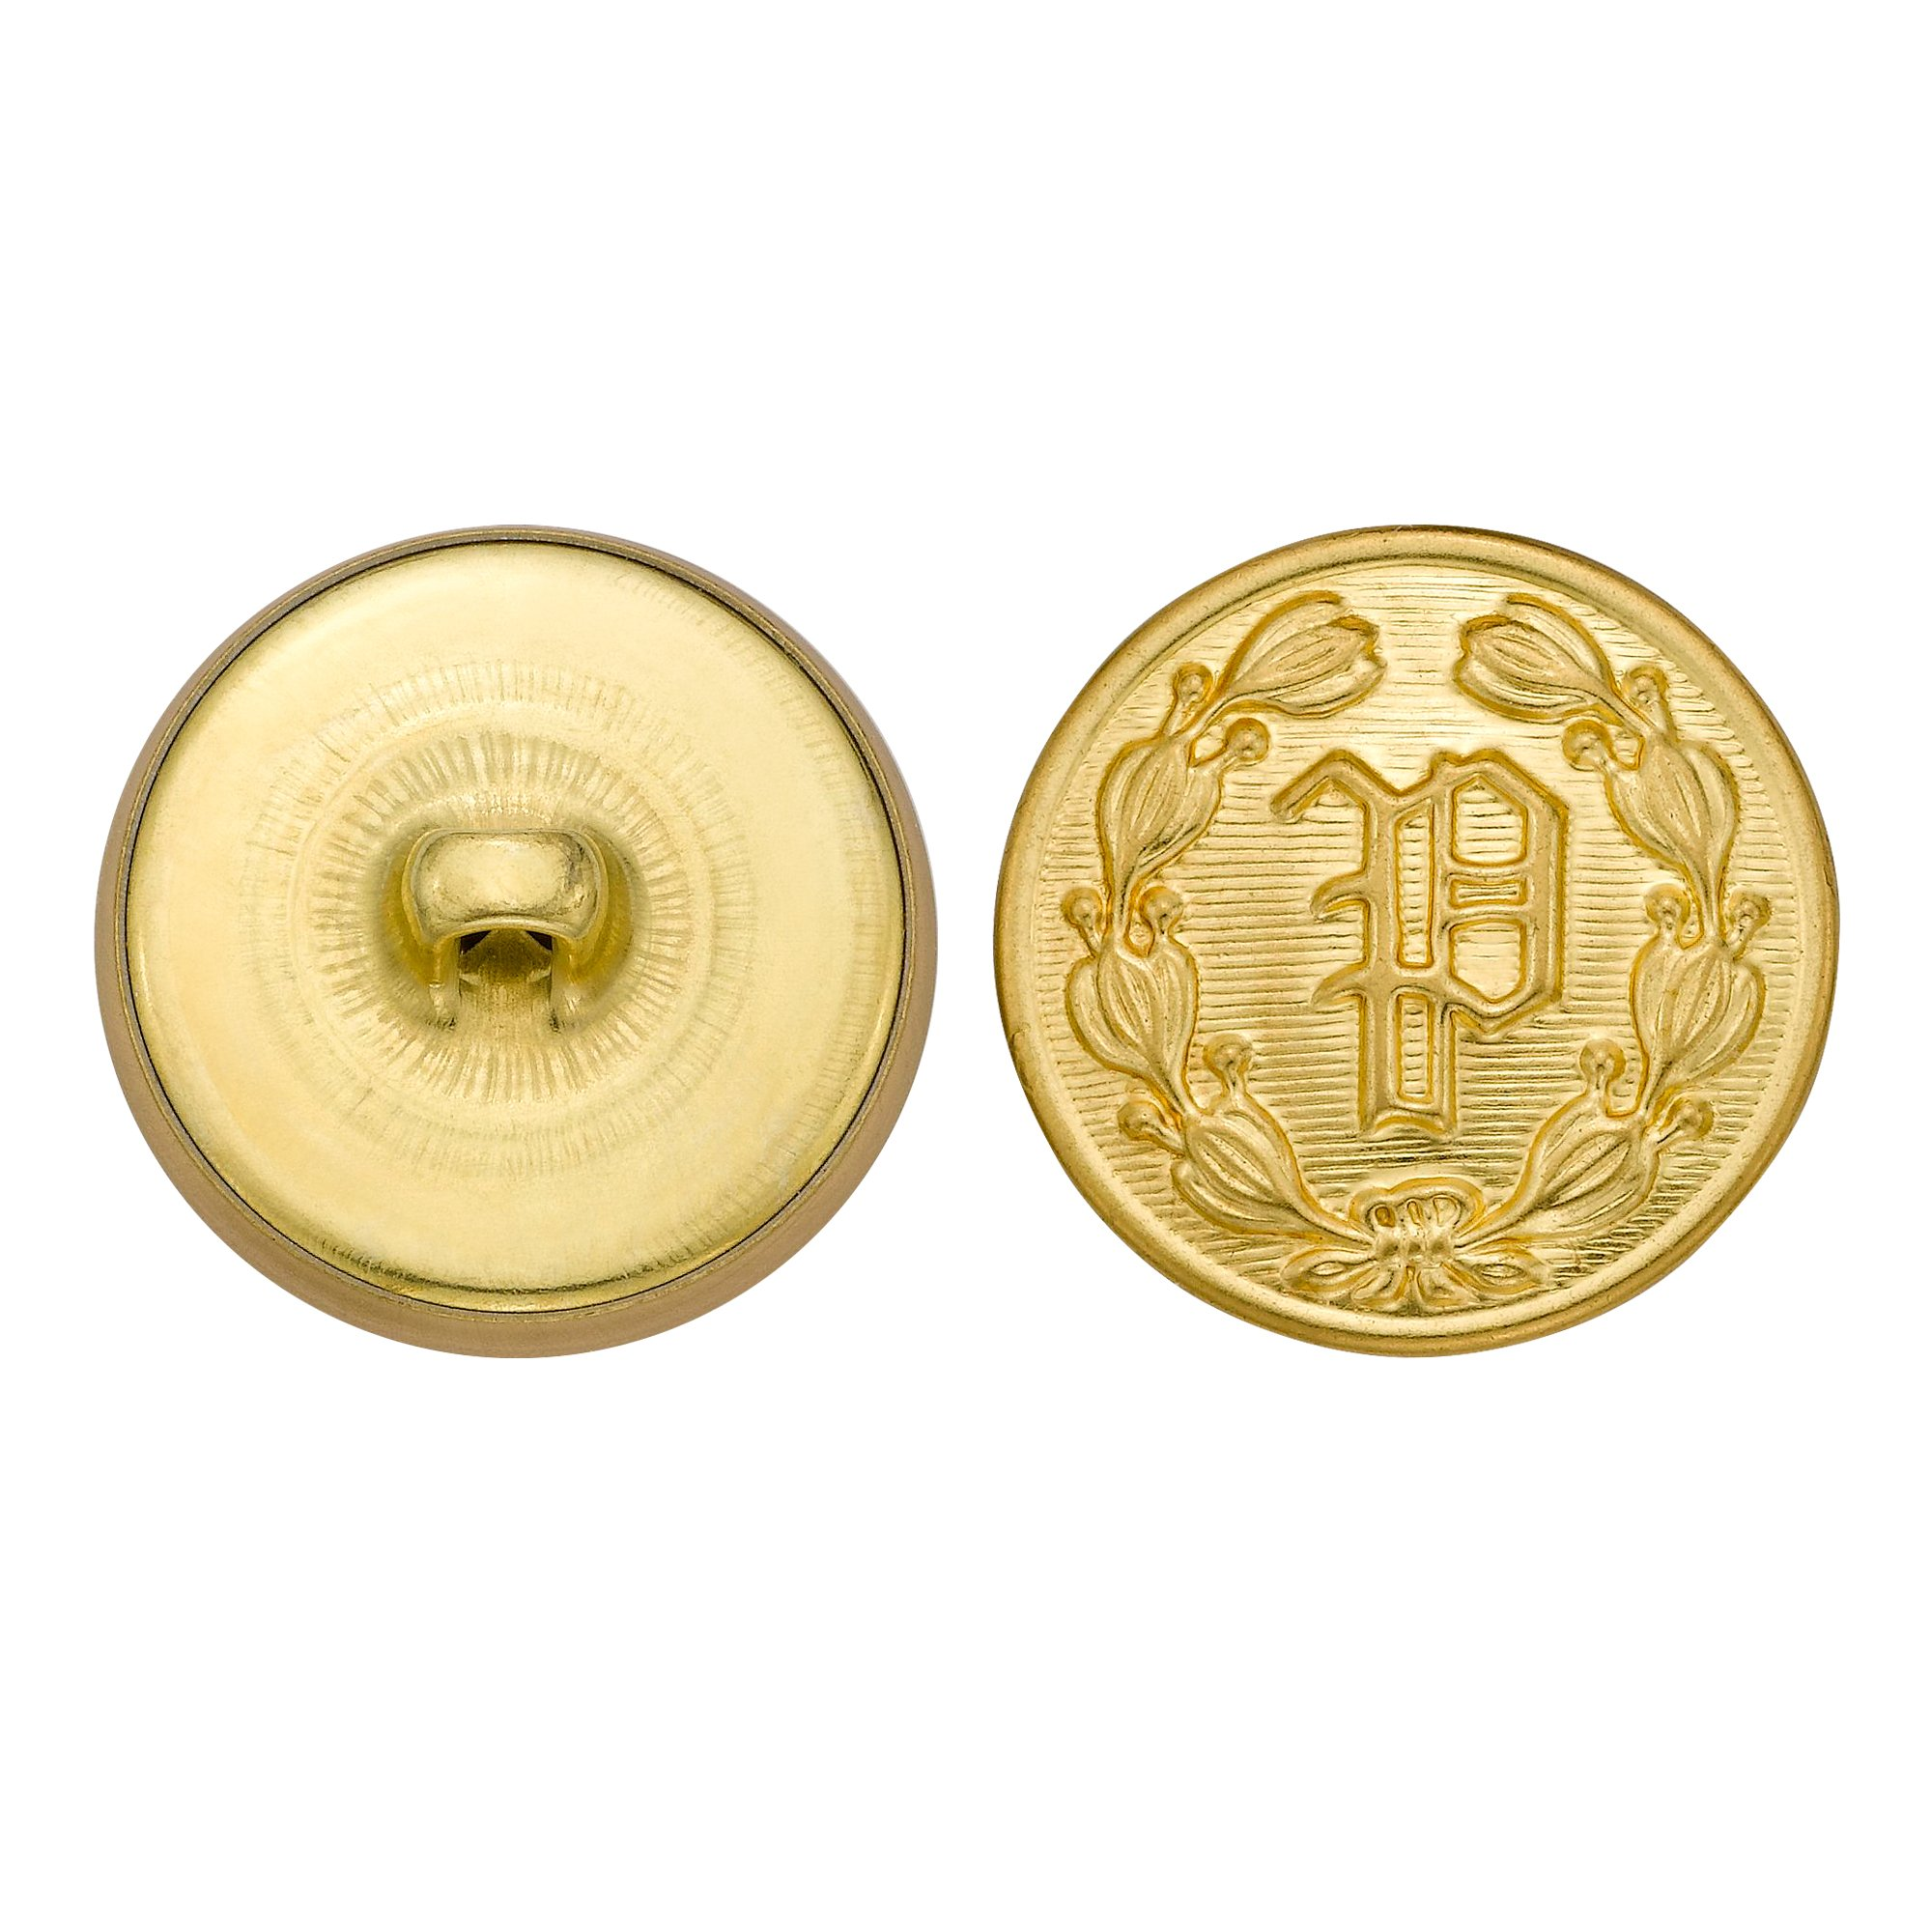 C&C Metal Products 5202 Police P Metal Button, Size 36 Ligne, Gold, 36-Pack by G & S Metal Products Company